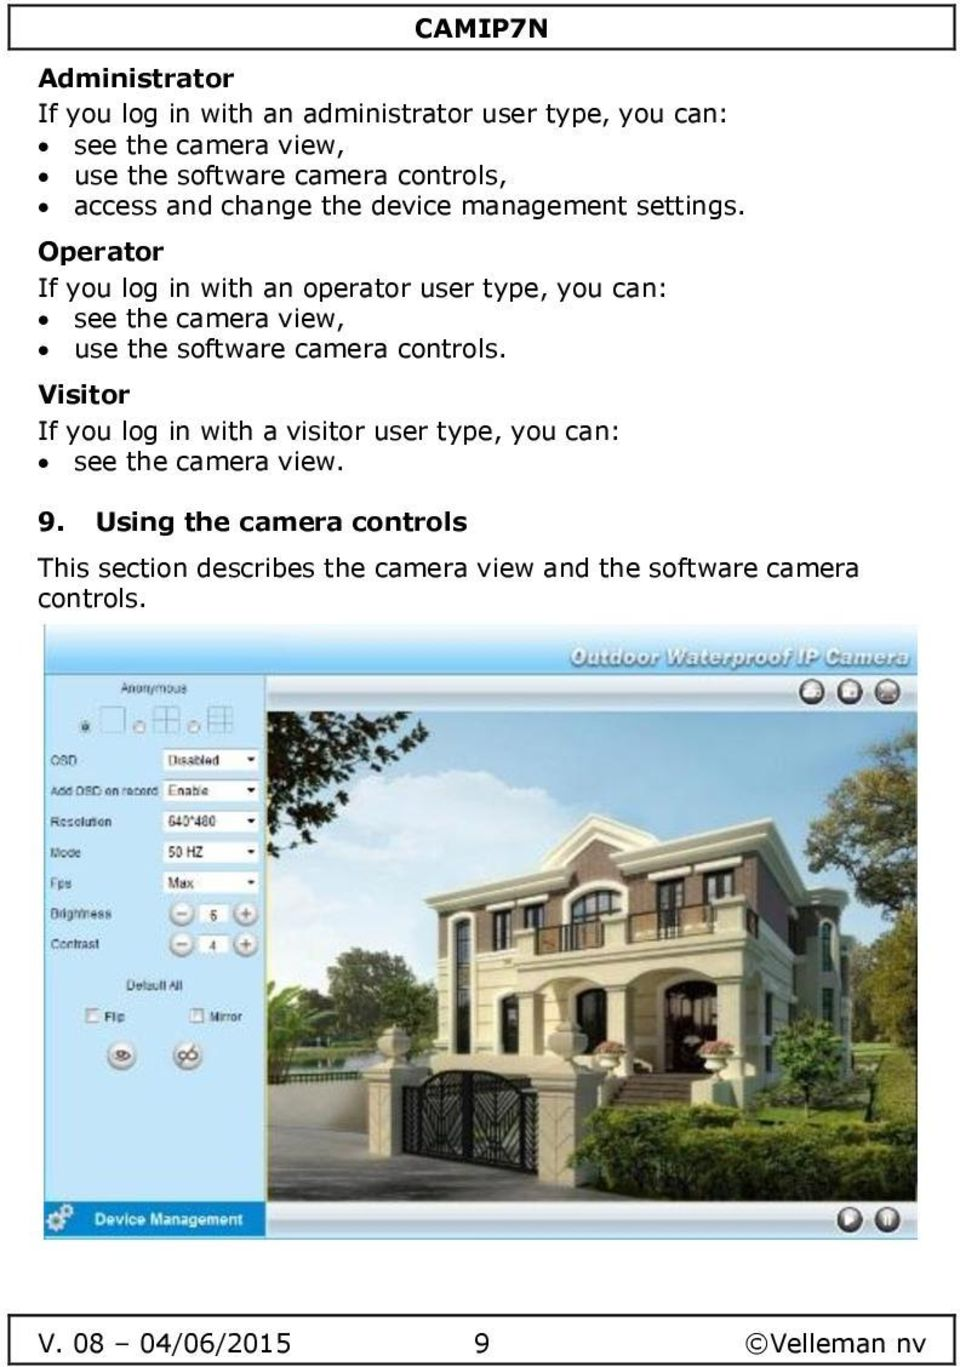 Operator If you log in with an operator user type, you can: see the camera view, use the software camera controls.